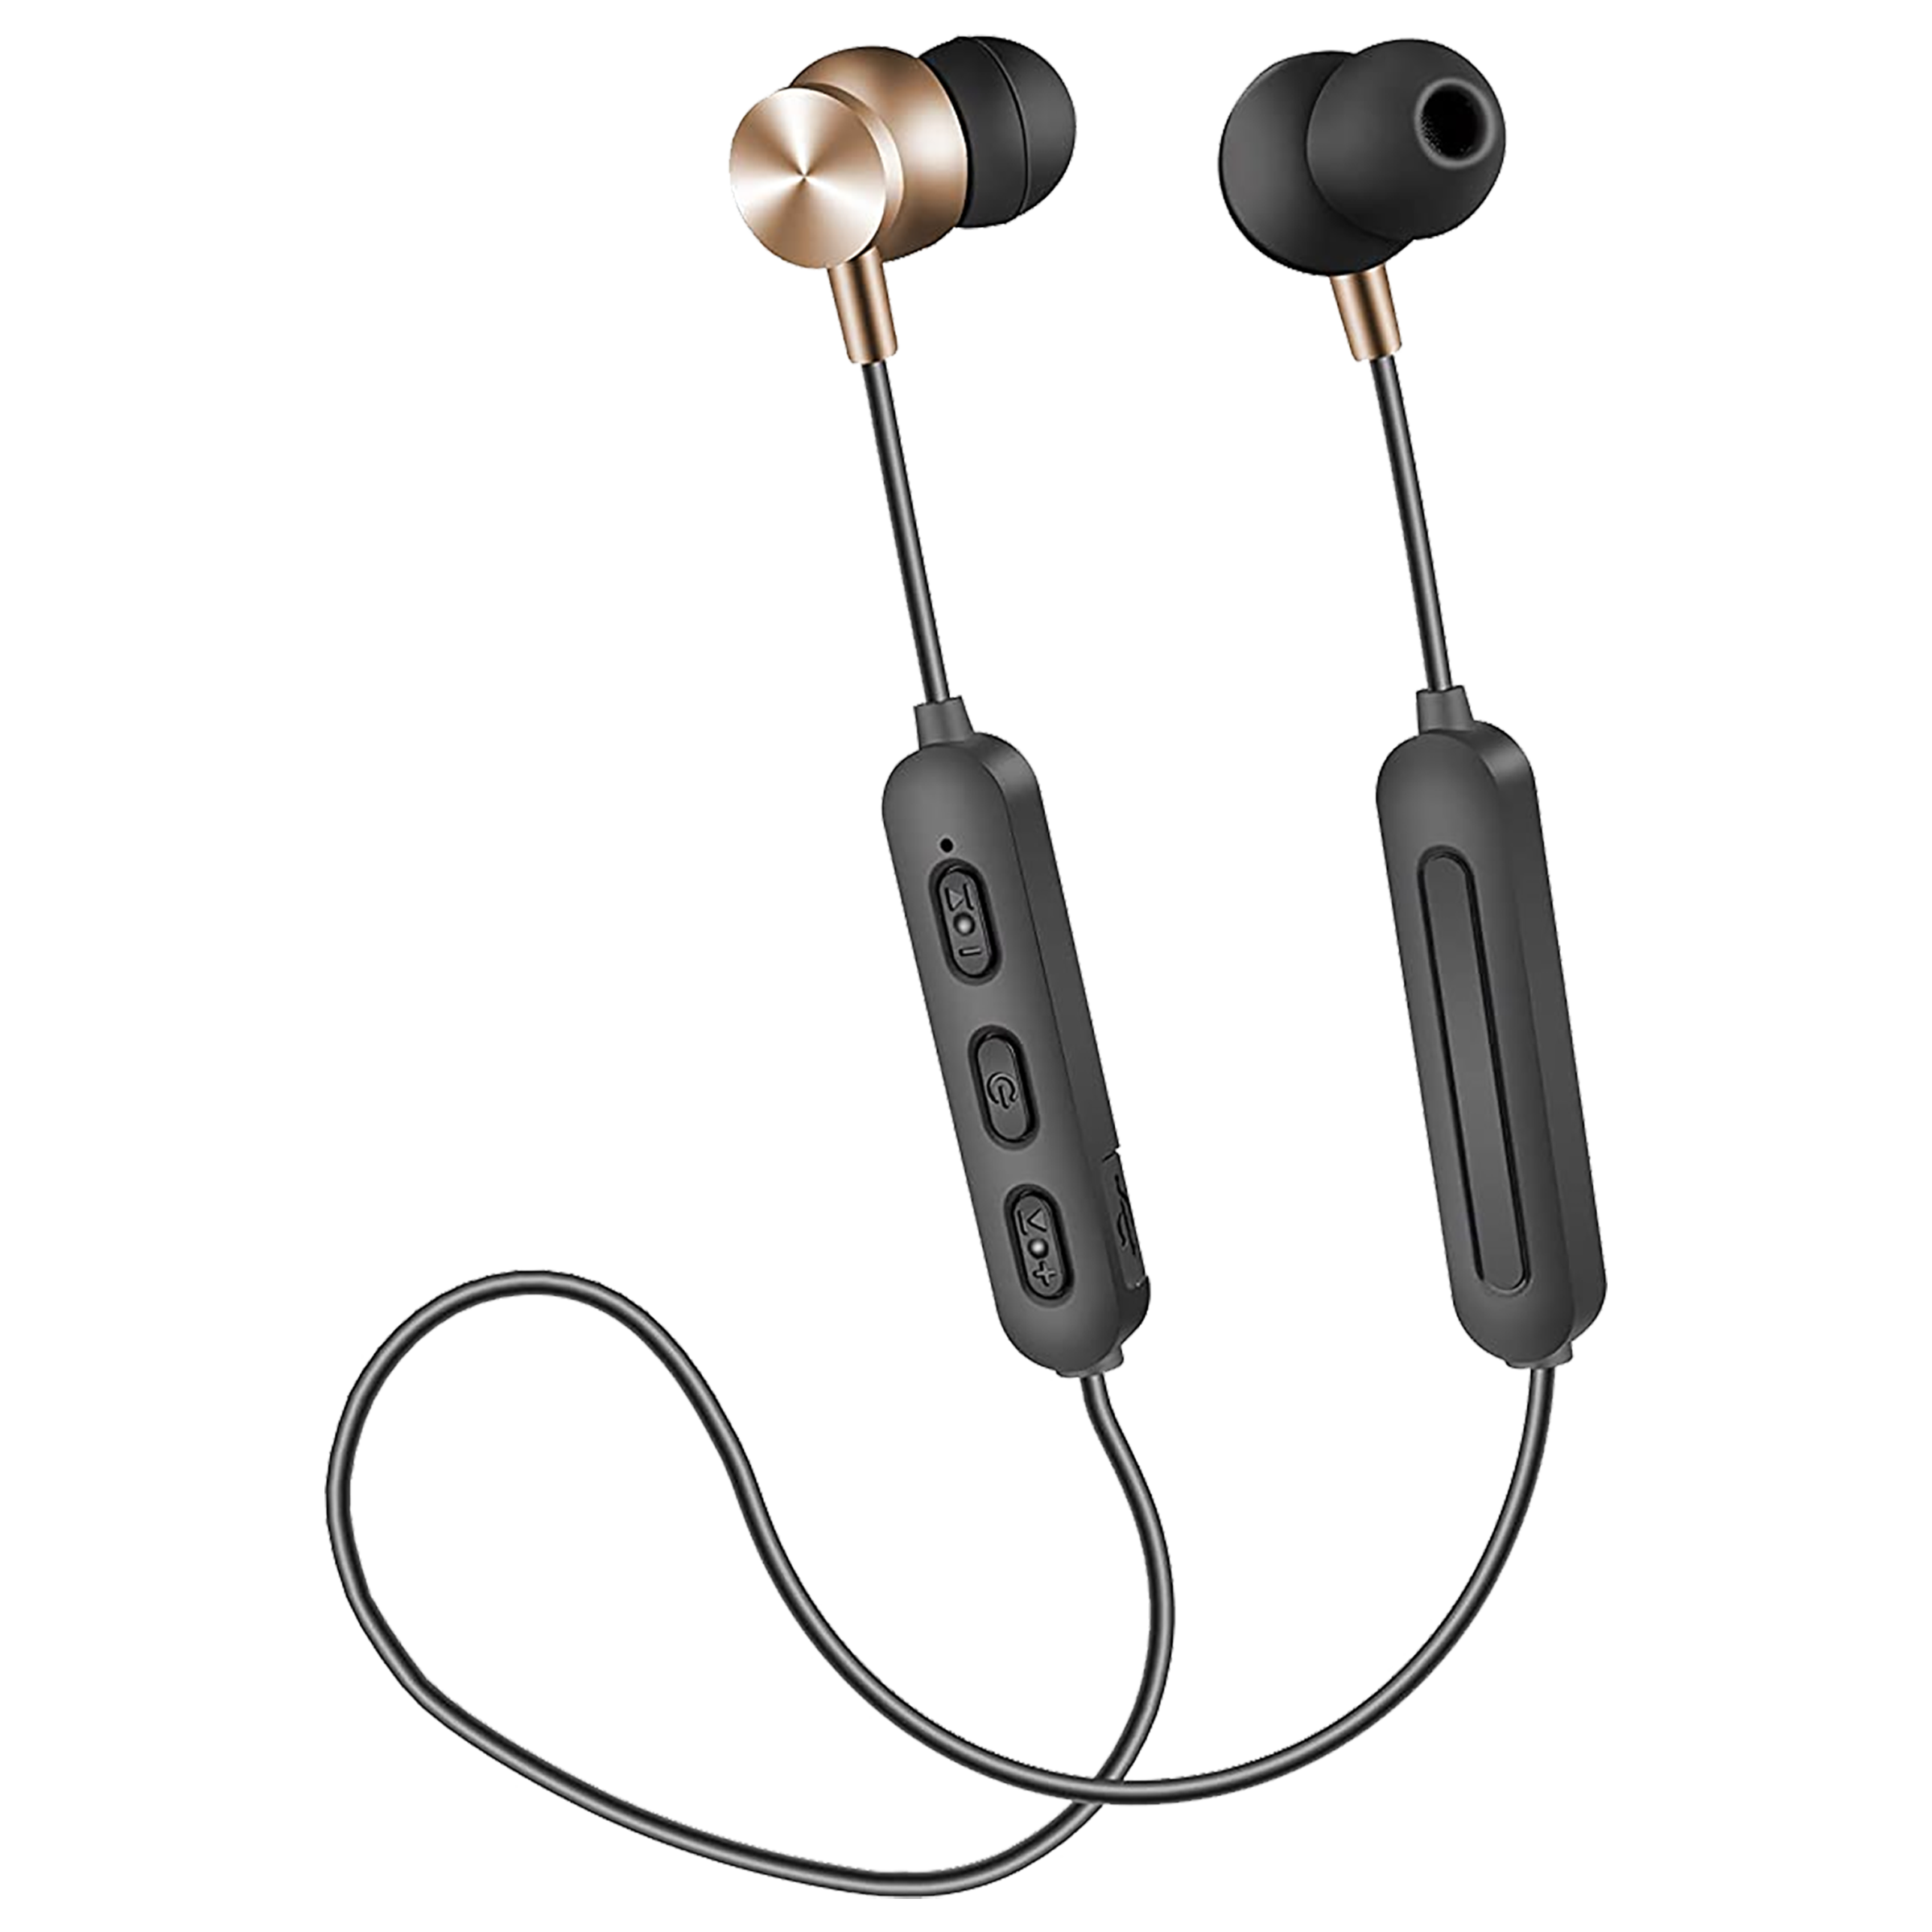 Tyoon In-Ear Active Noise Cancellation Wireless Earphone with Mic (Bluetooth 5.0, Stereo Sound, SN301, Black)_1